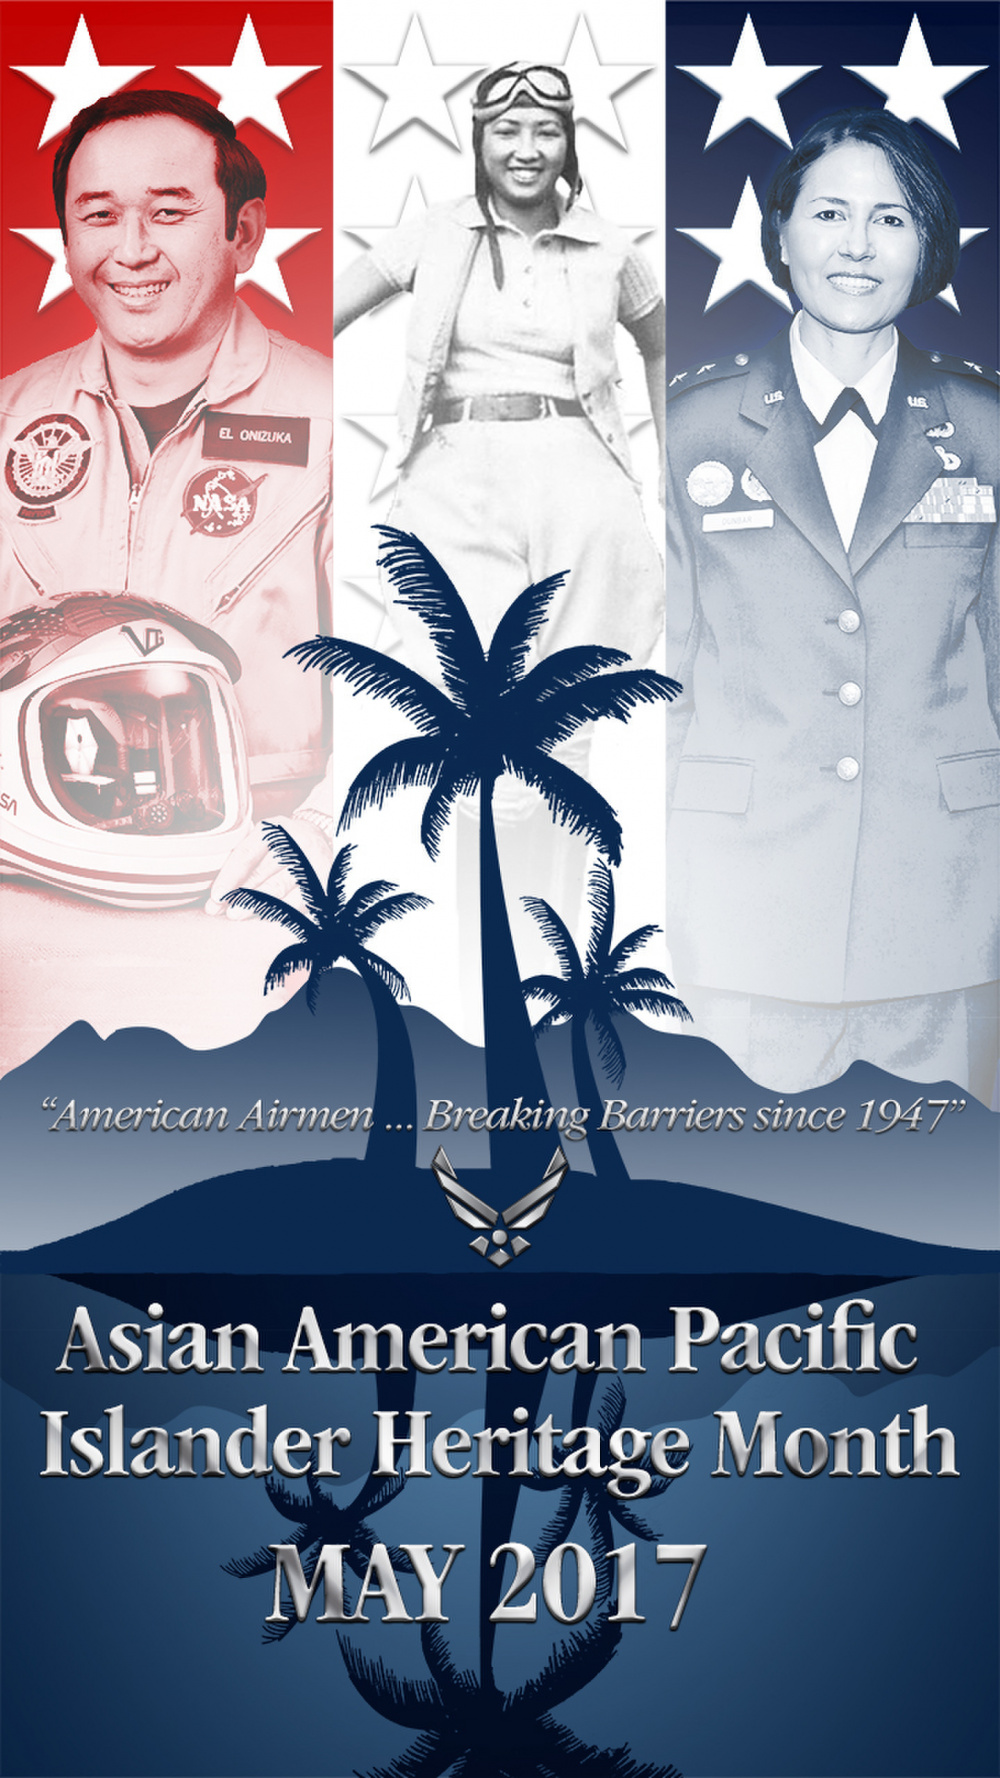 Asian American Pacific Islander Heritage Month Poster Infonet